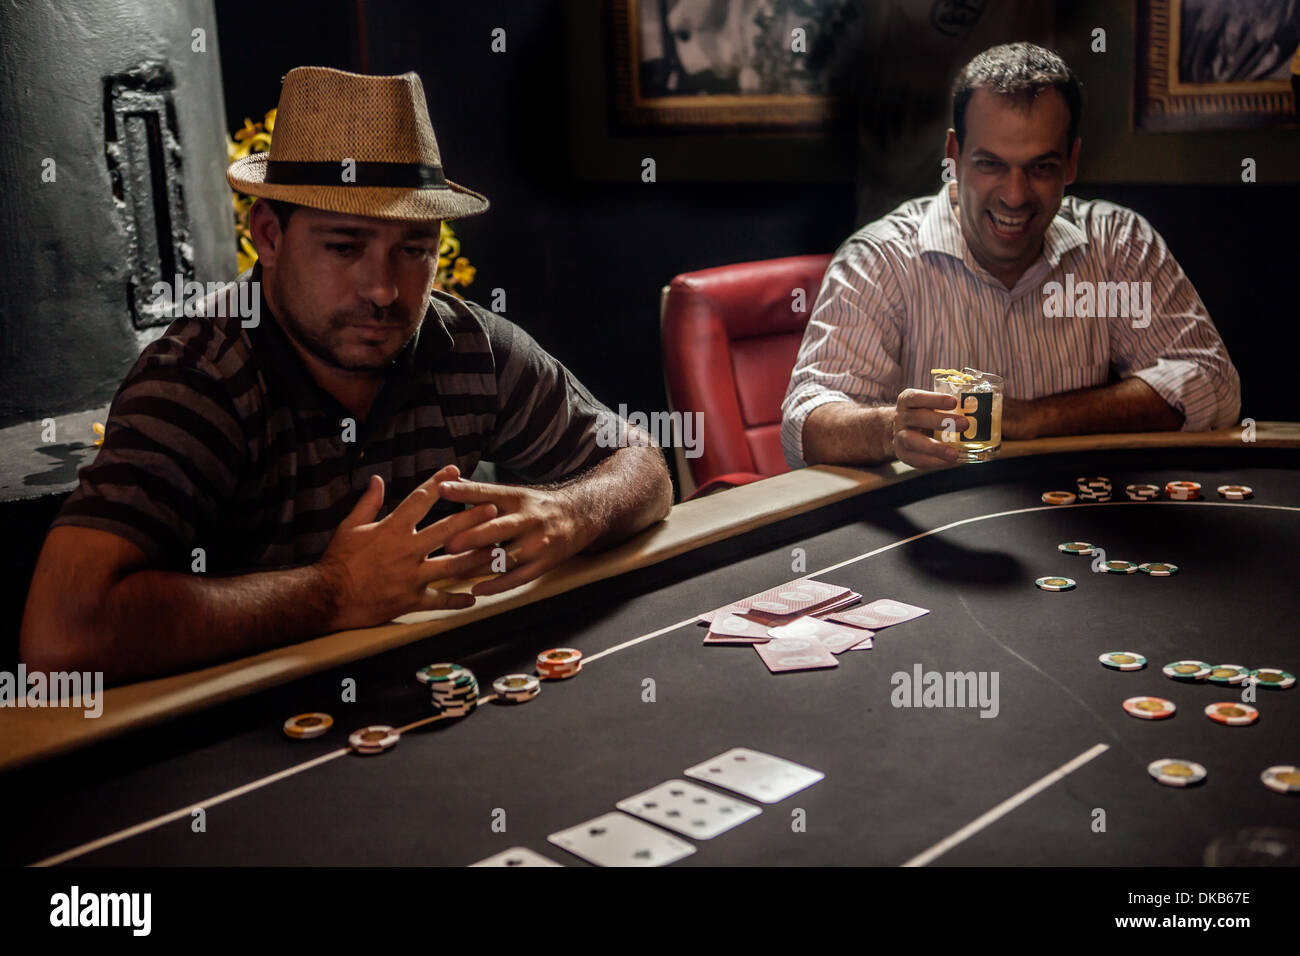 Mid adult men playing poker and drinking cocktails - Stock Image